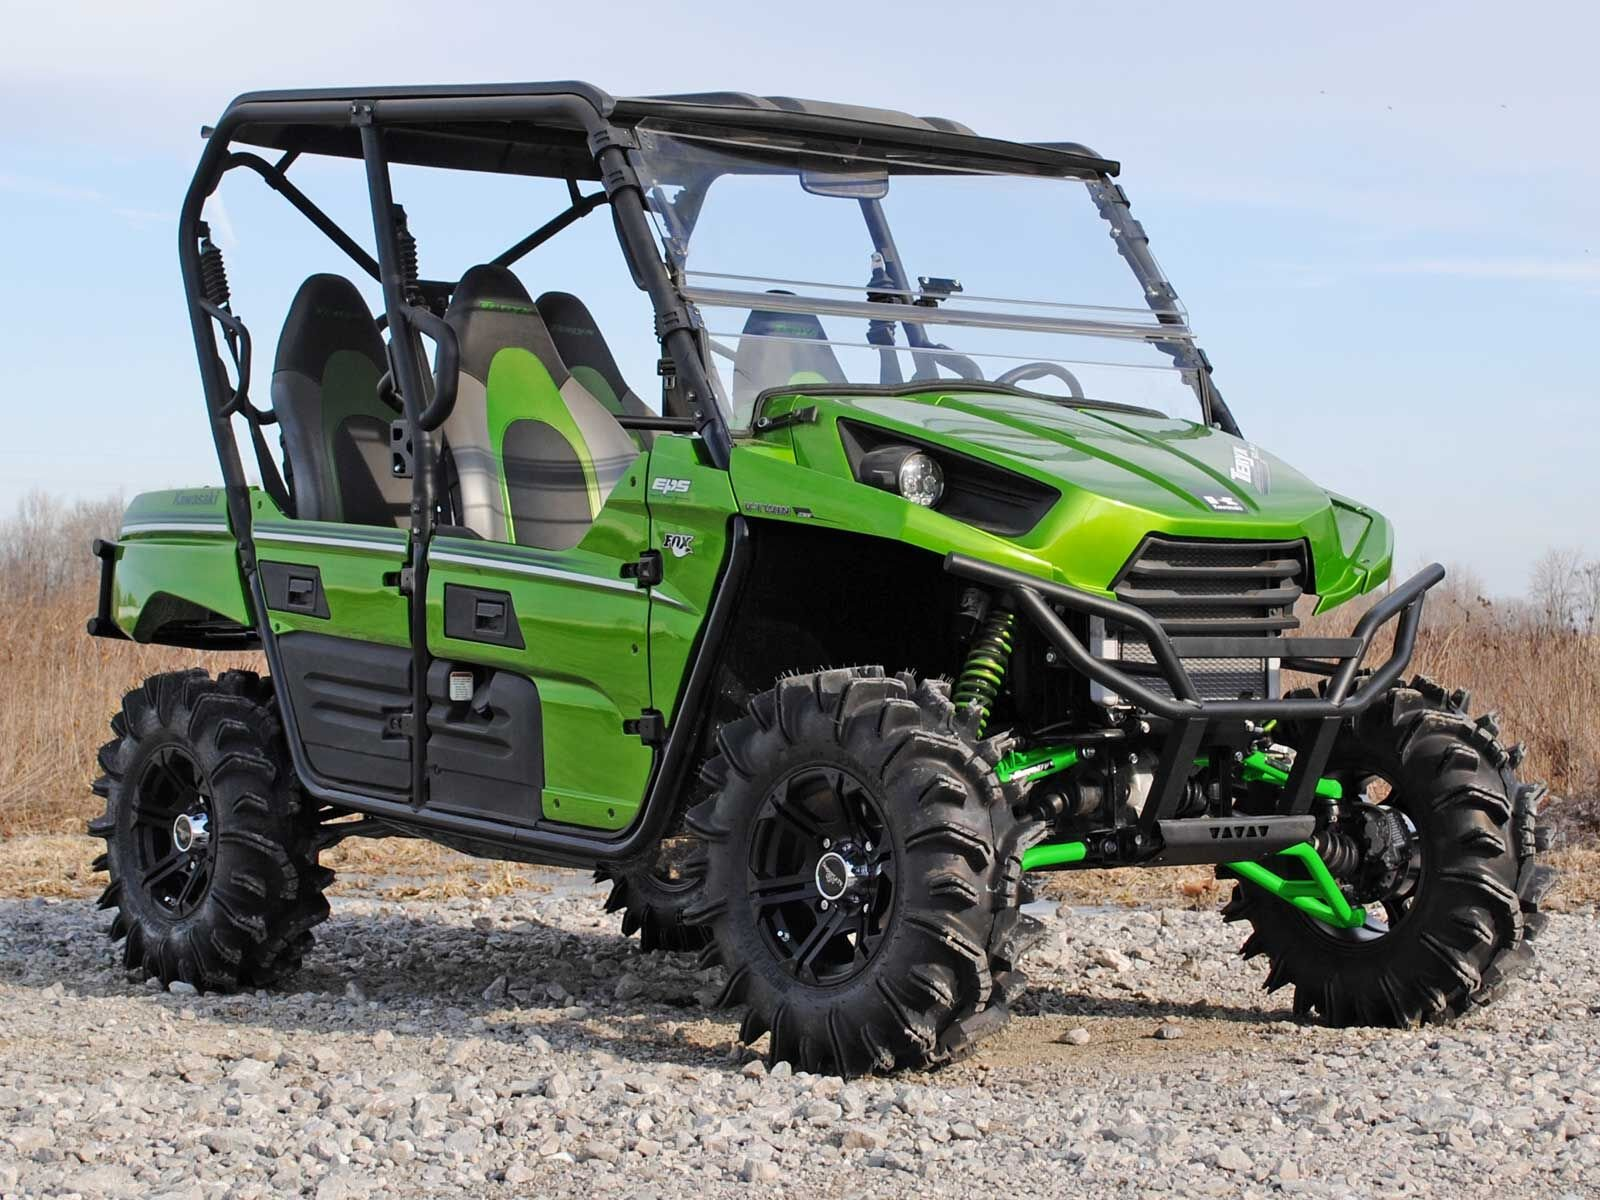 SuperATV High Clearance Forward Offset Front A-Arms for Kawasaki Teryx/Teryx 4 (See Fitment) - Green by SuperATV.com (Image #5)